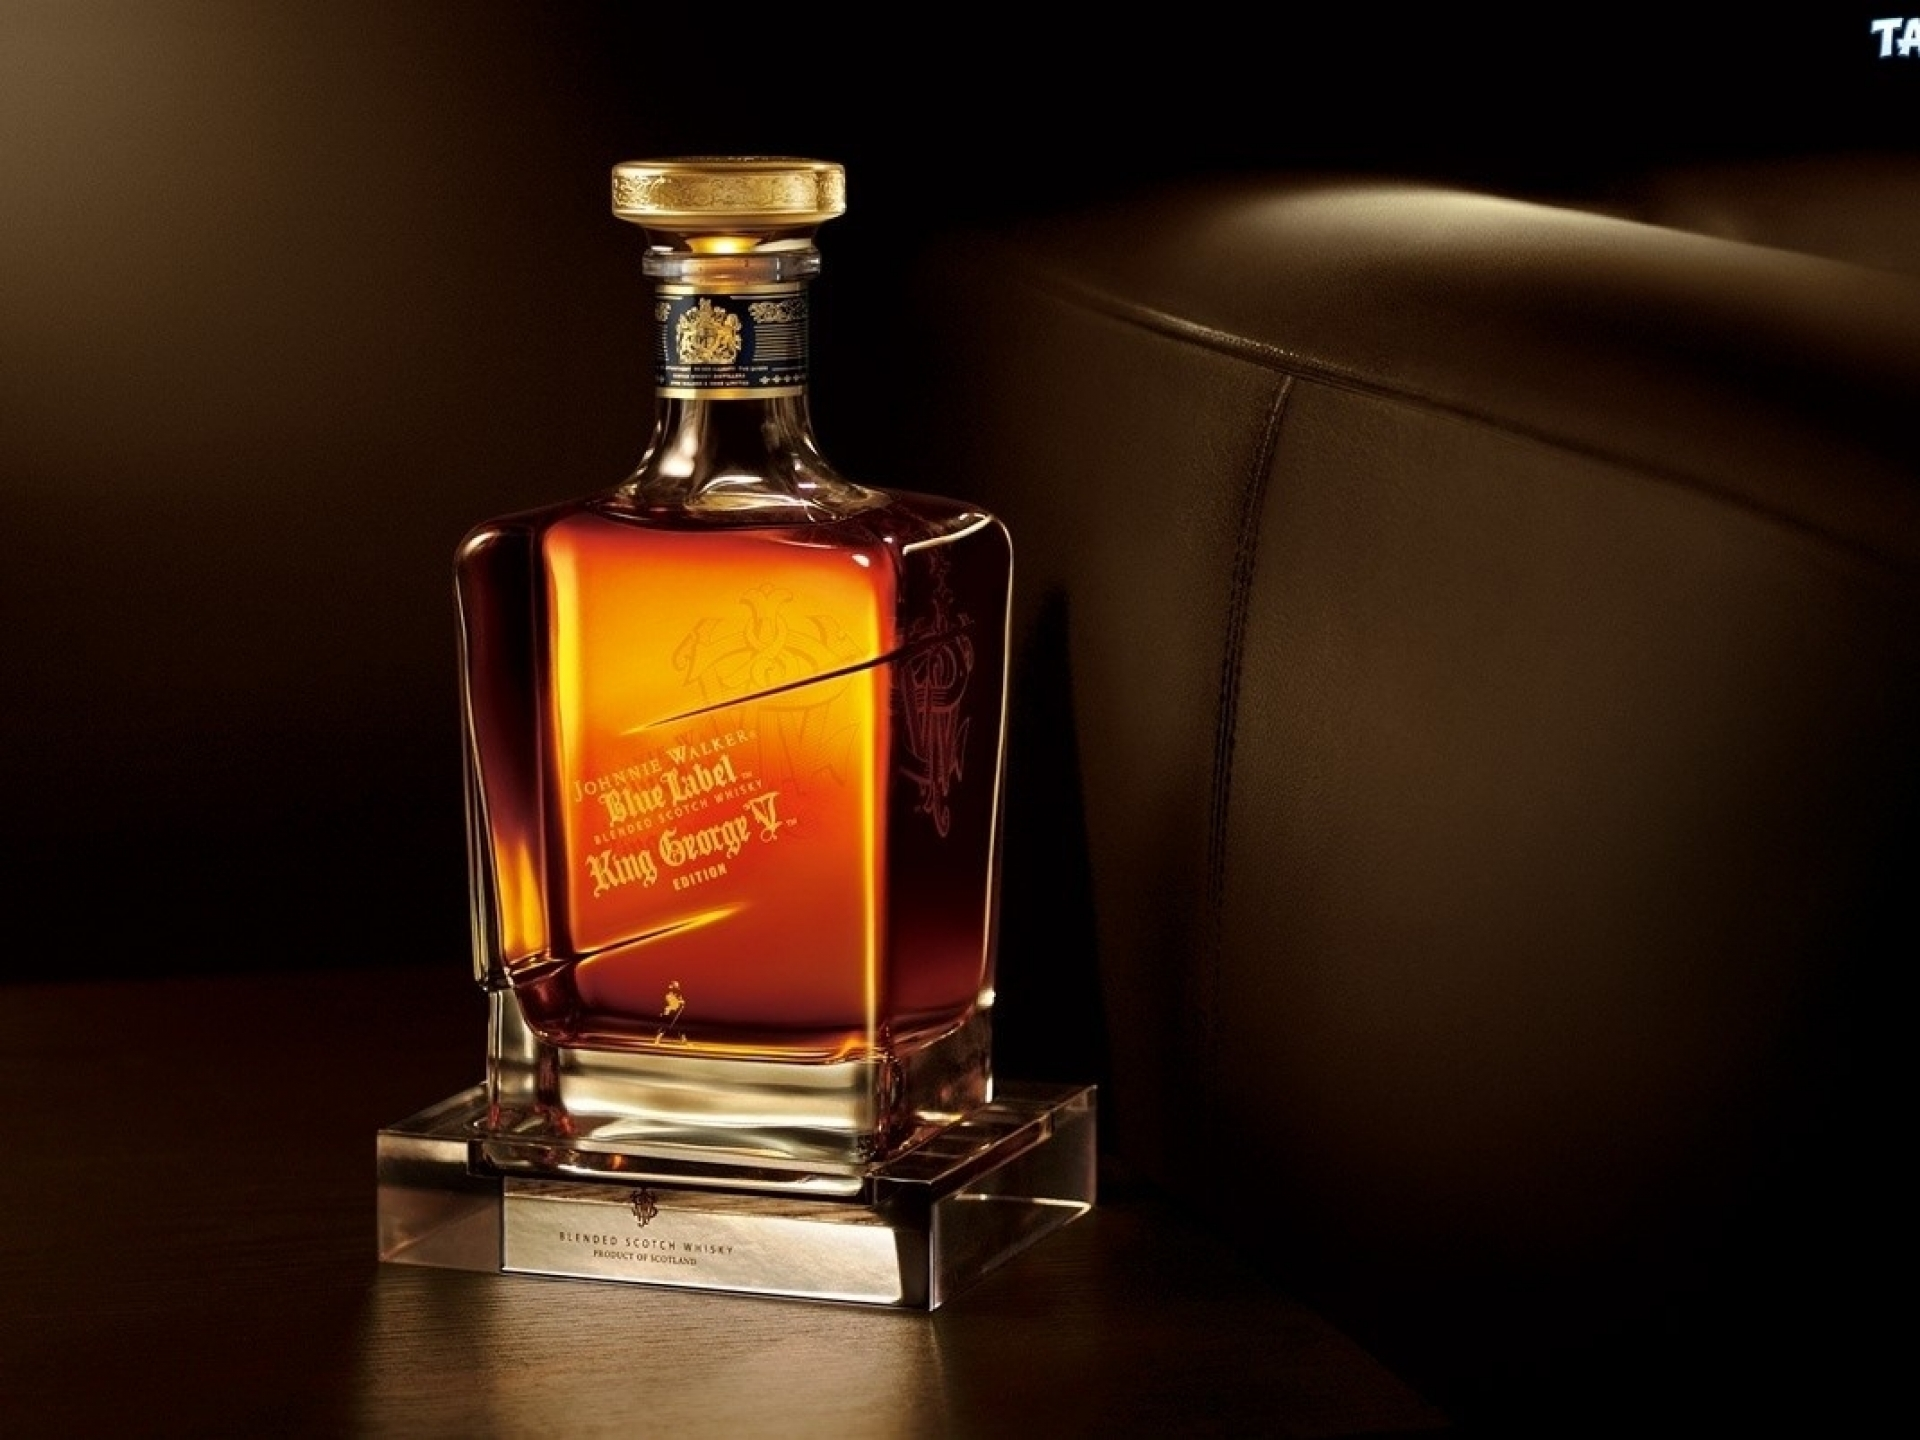 Hennessy Wallpaper Iphone Whisky Full Hd Wallpaper And Background Image 1920x1440